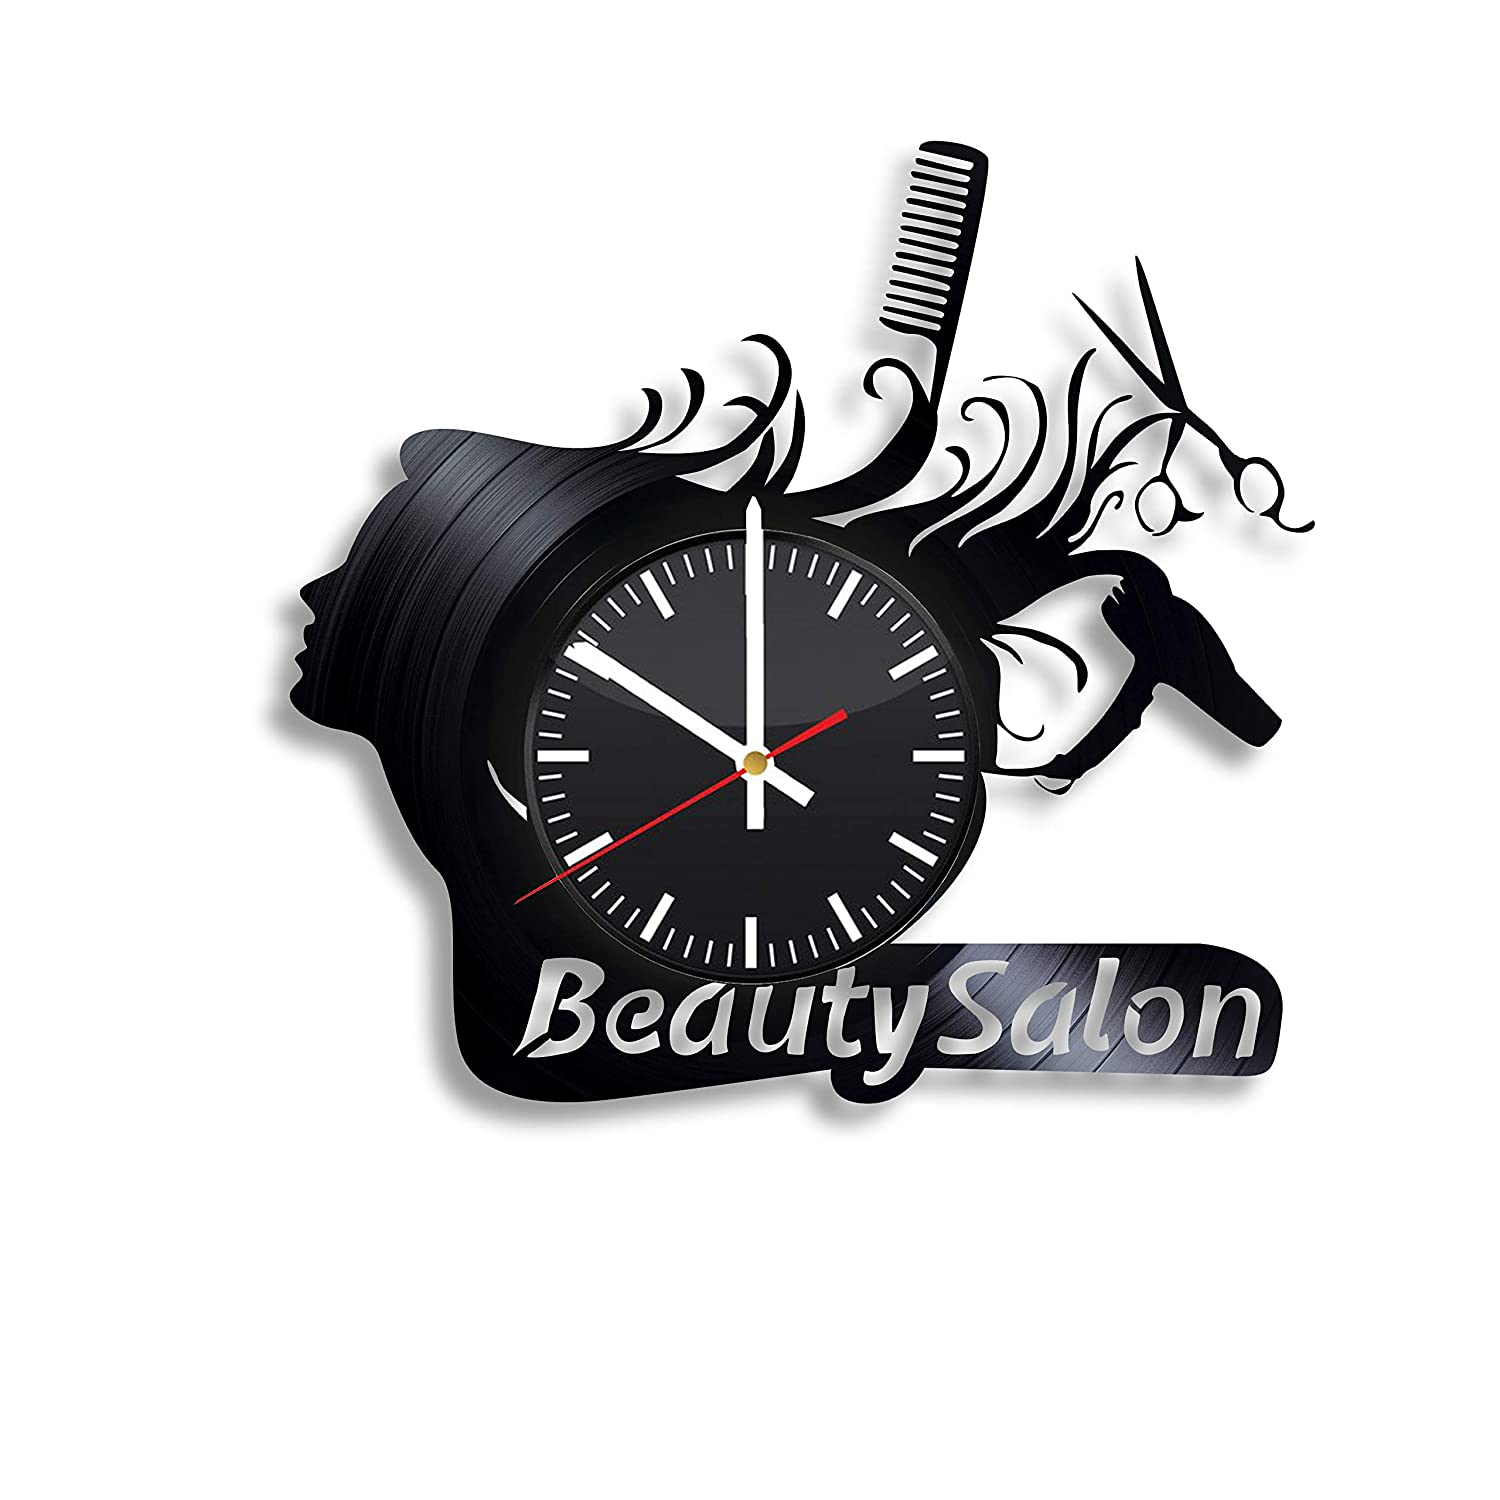 Beauty Salon Vinyl Wall Clock, Hairdresser Tools Art Handmade Gift Idea for Any Occasion, Original Home Room Kitchen Decor, Vintage Modern Style Theme